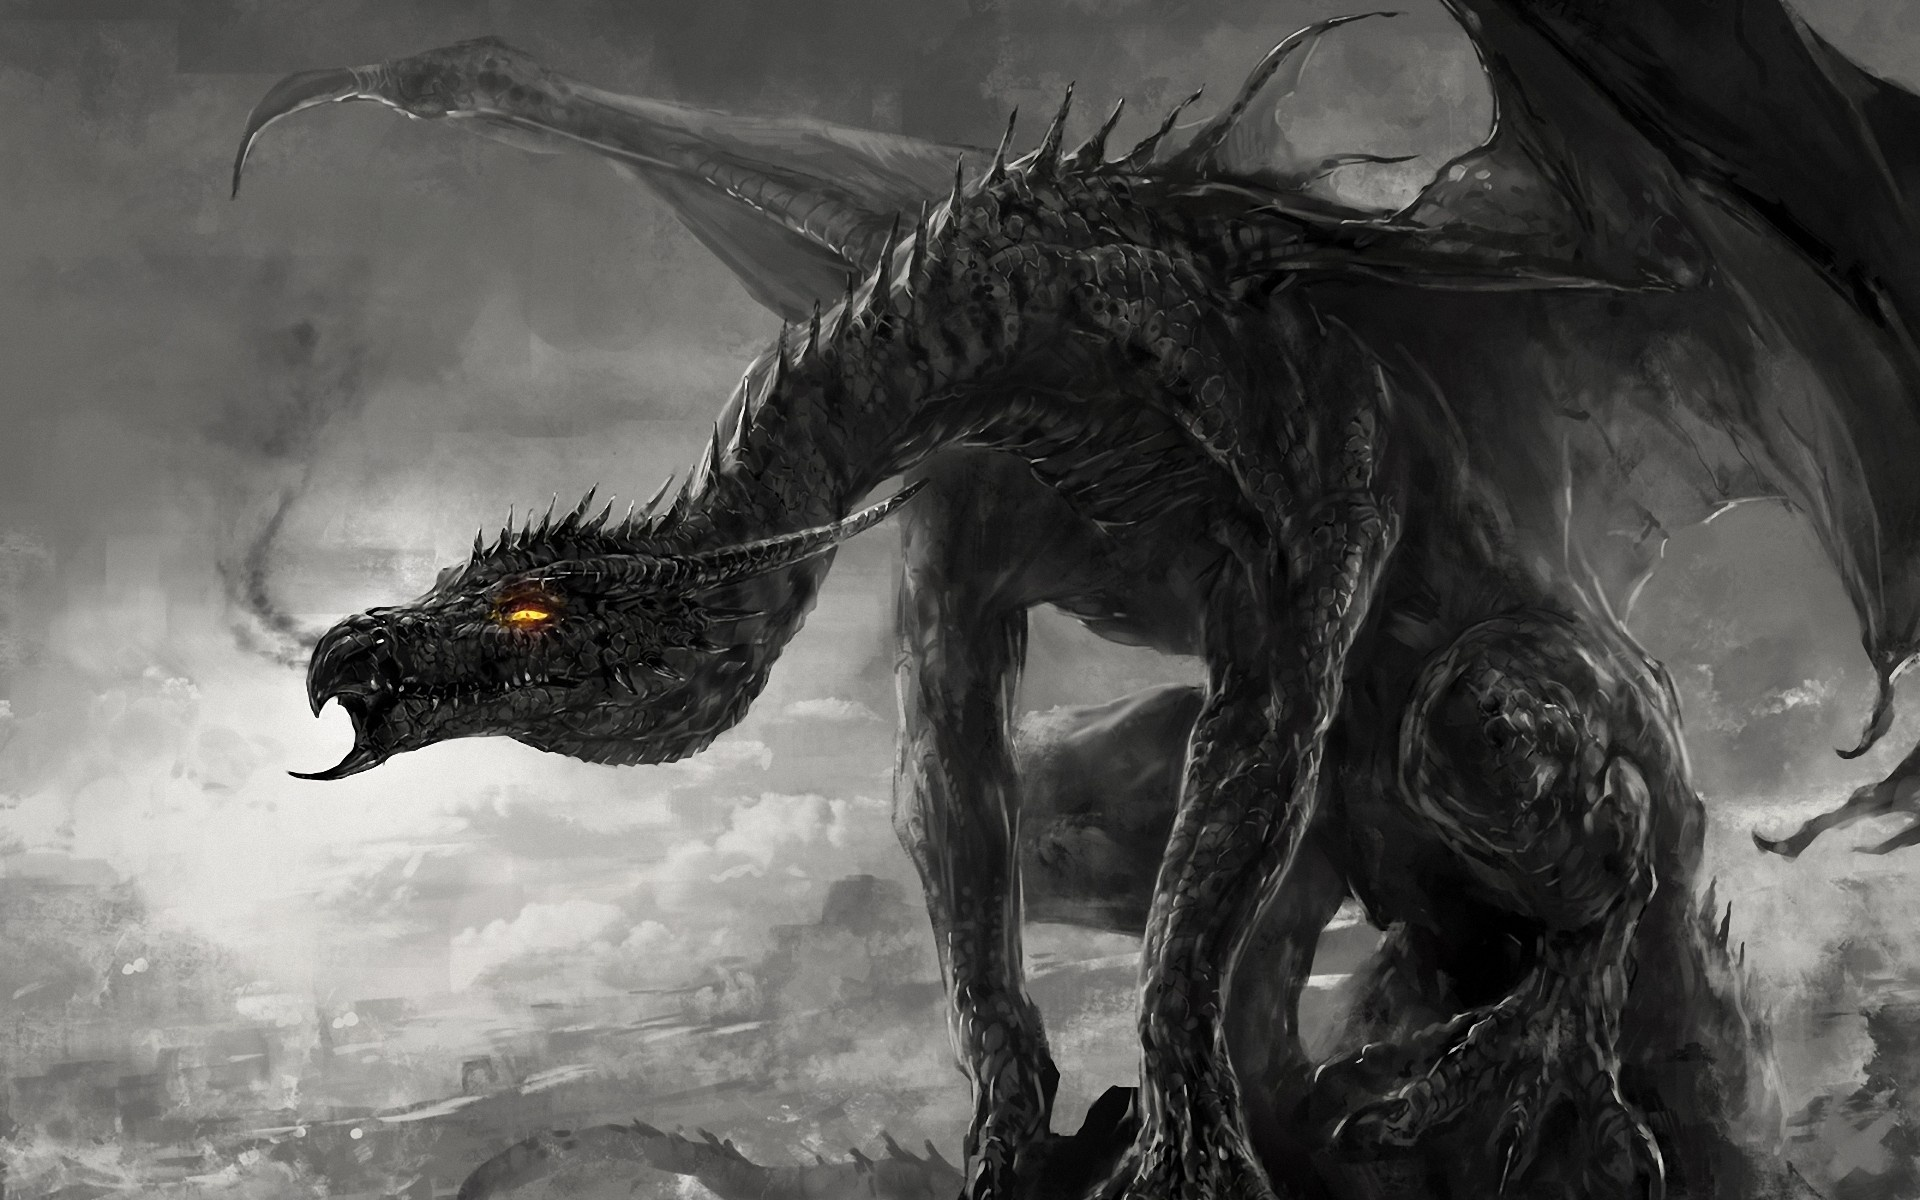 Wallpaper art dragon monster black and white monochrome smoke 1920x1200